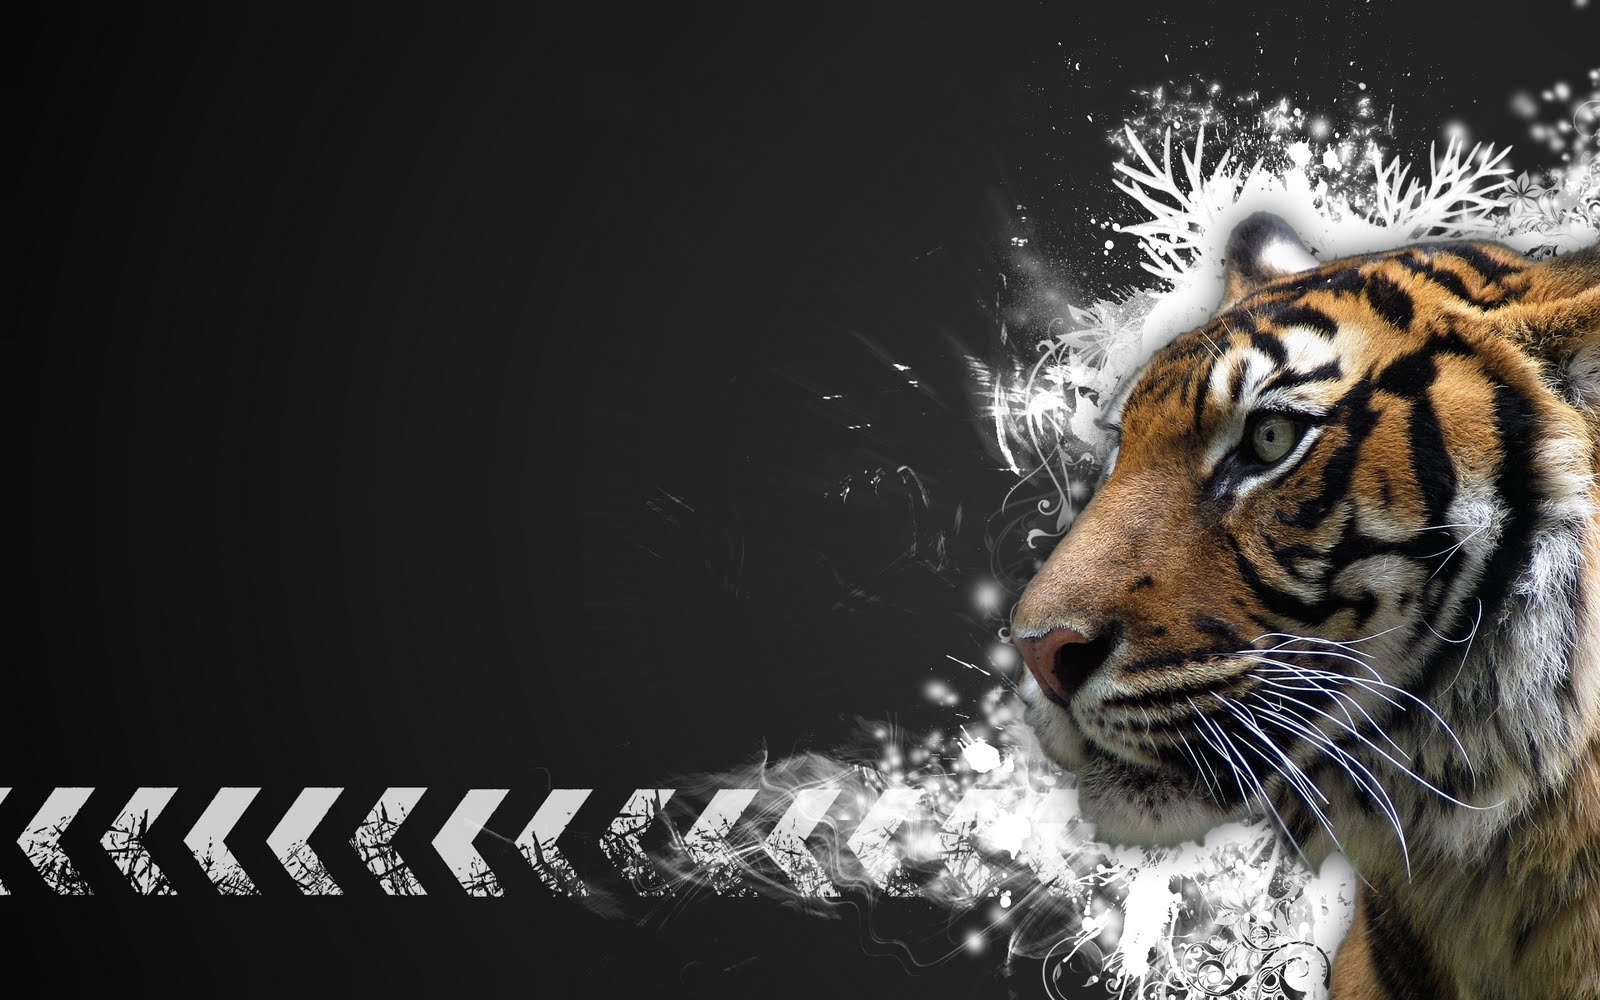 http://3.bp.blogspot.com/-rk7vDk1Xosw/TqEVfBNkS0I/AAAAAAAABaM/nPR13HI7dq4/s1600/tiger_wallpapers_hd_Tiger_Vector_Widescreen_HD_Wallpaper.jpg